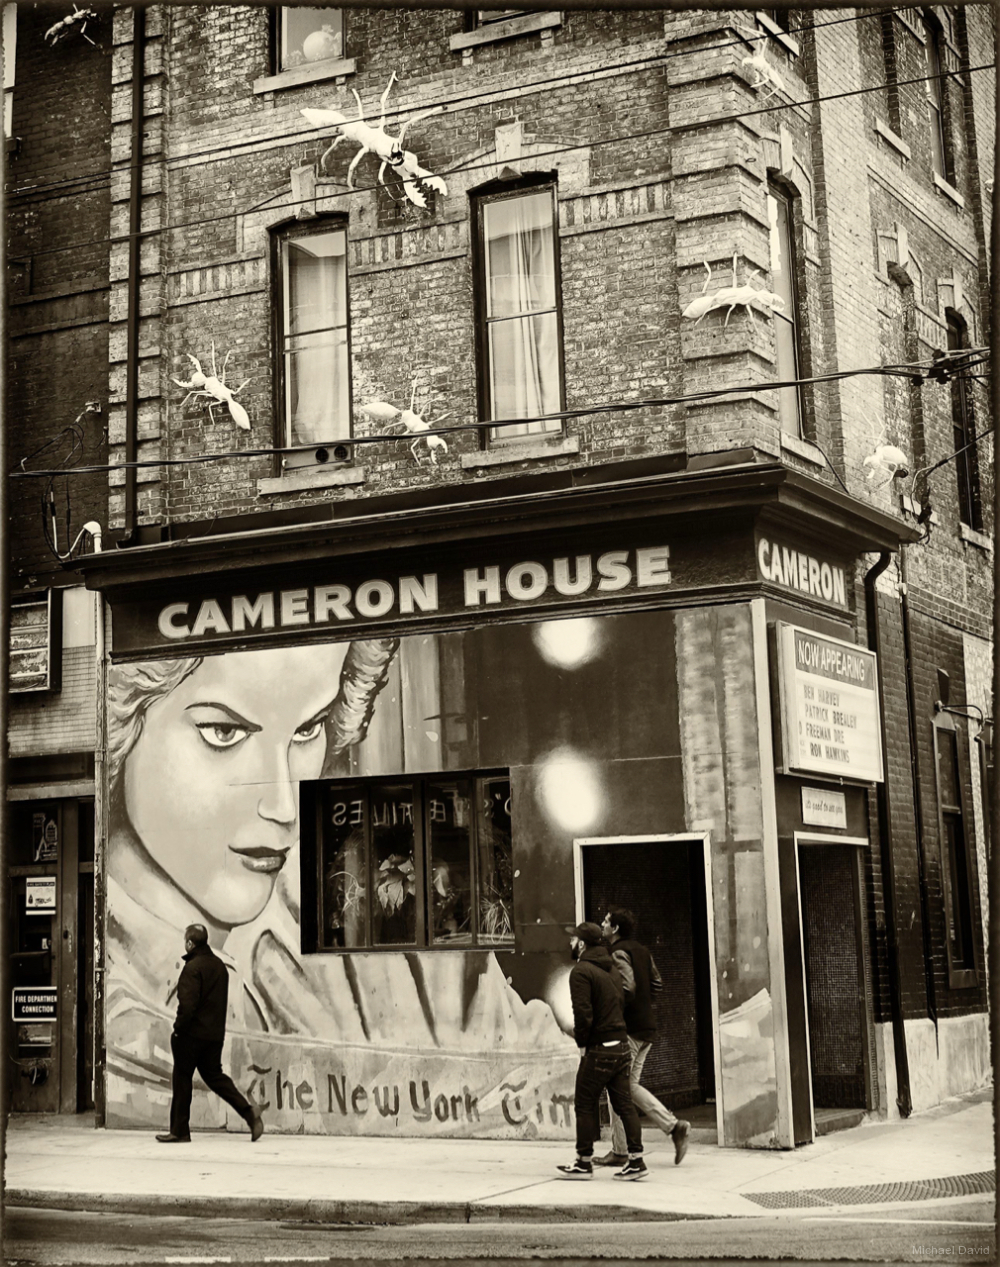 The Cameron House